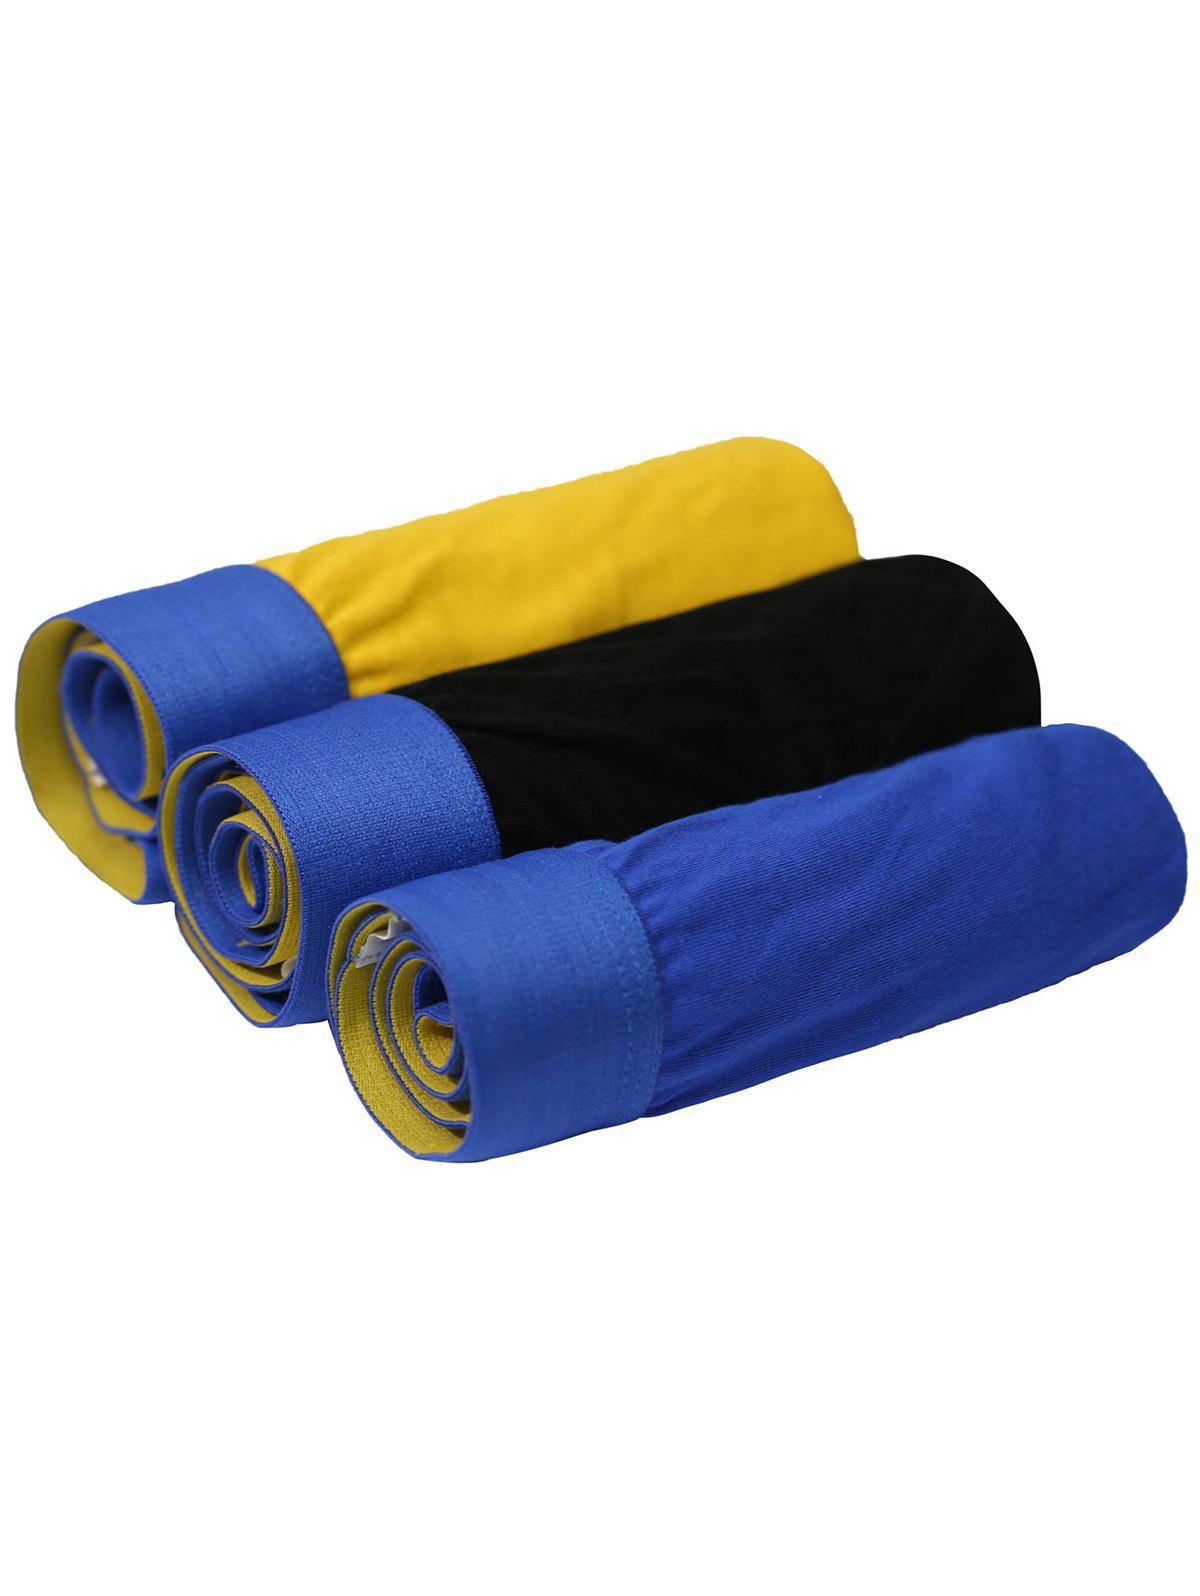 Cherlamode 3PCS U Convex Pouch Band Briefs - BLUE/YELLOW/BLACK XL